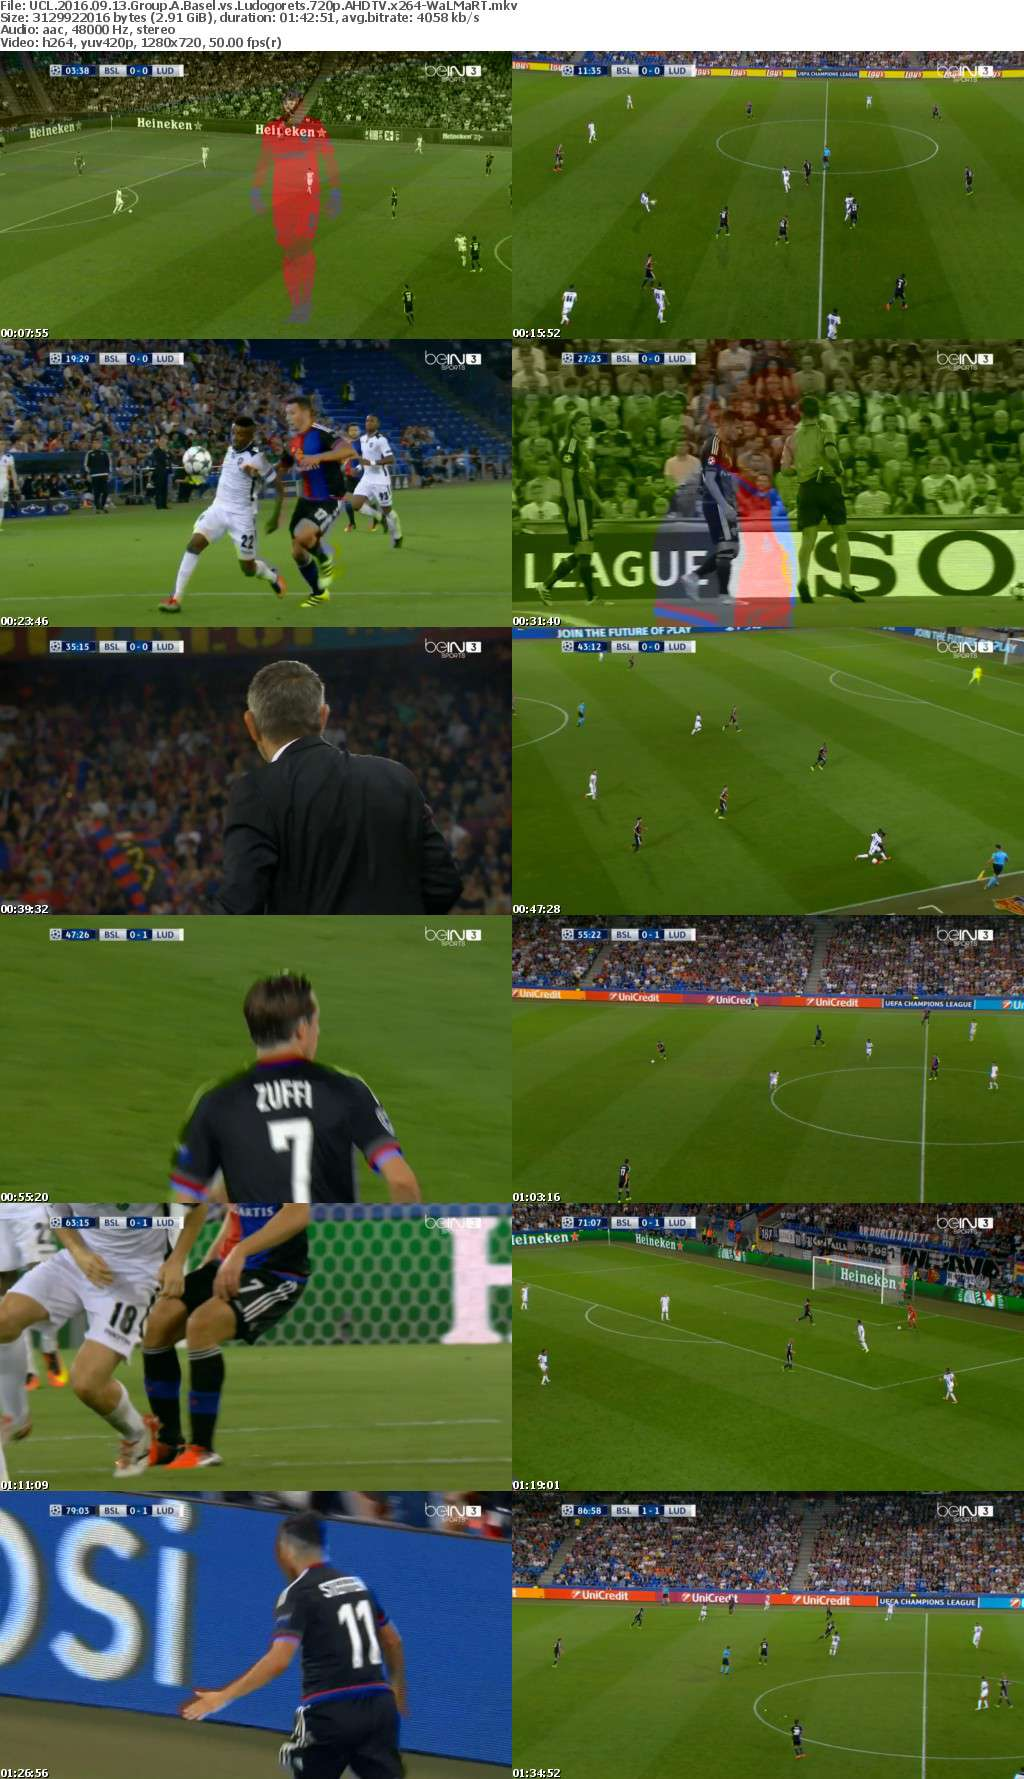 UCL 2016 09 13 Group A Basel vs Ludogorets 720p AHDTV x264-WaLMaRT